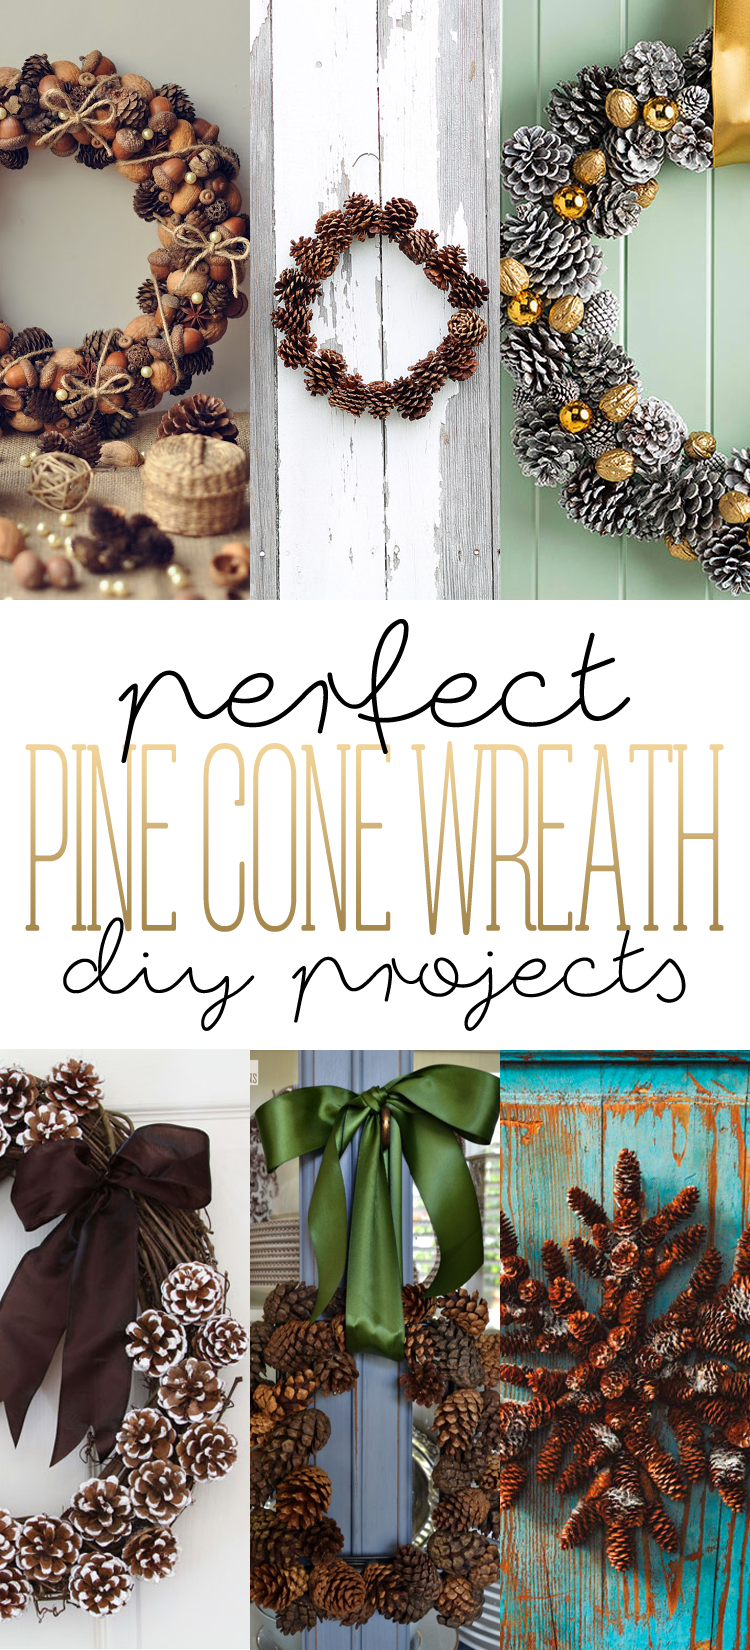 http://thecottagemarket.com/wp-content/uploads/2015/10/PineCone-tower-001.png